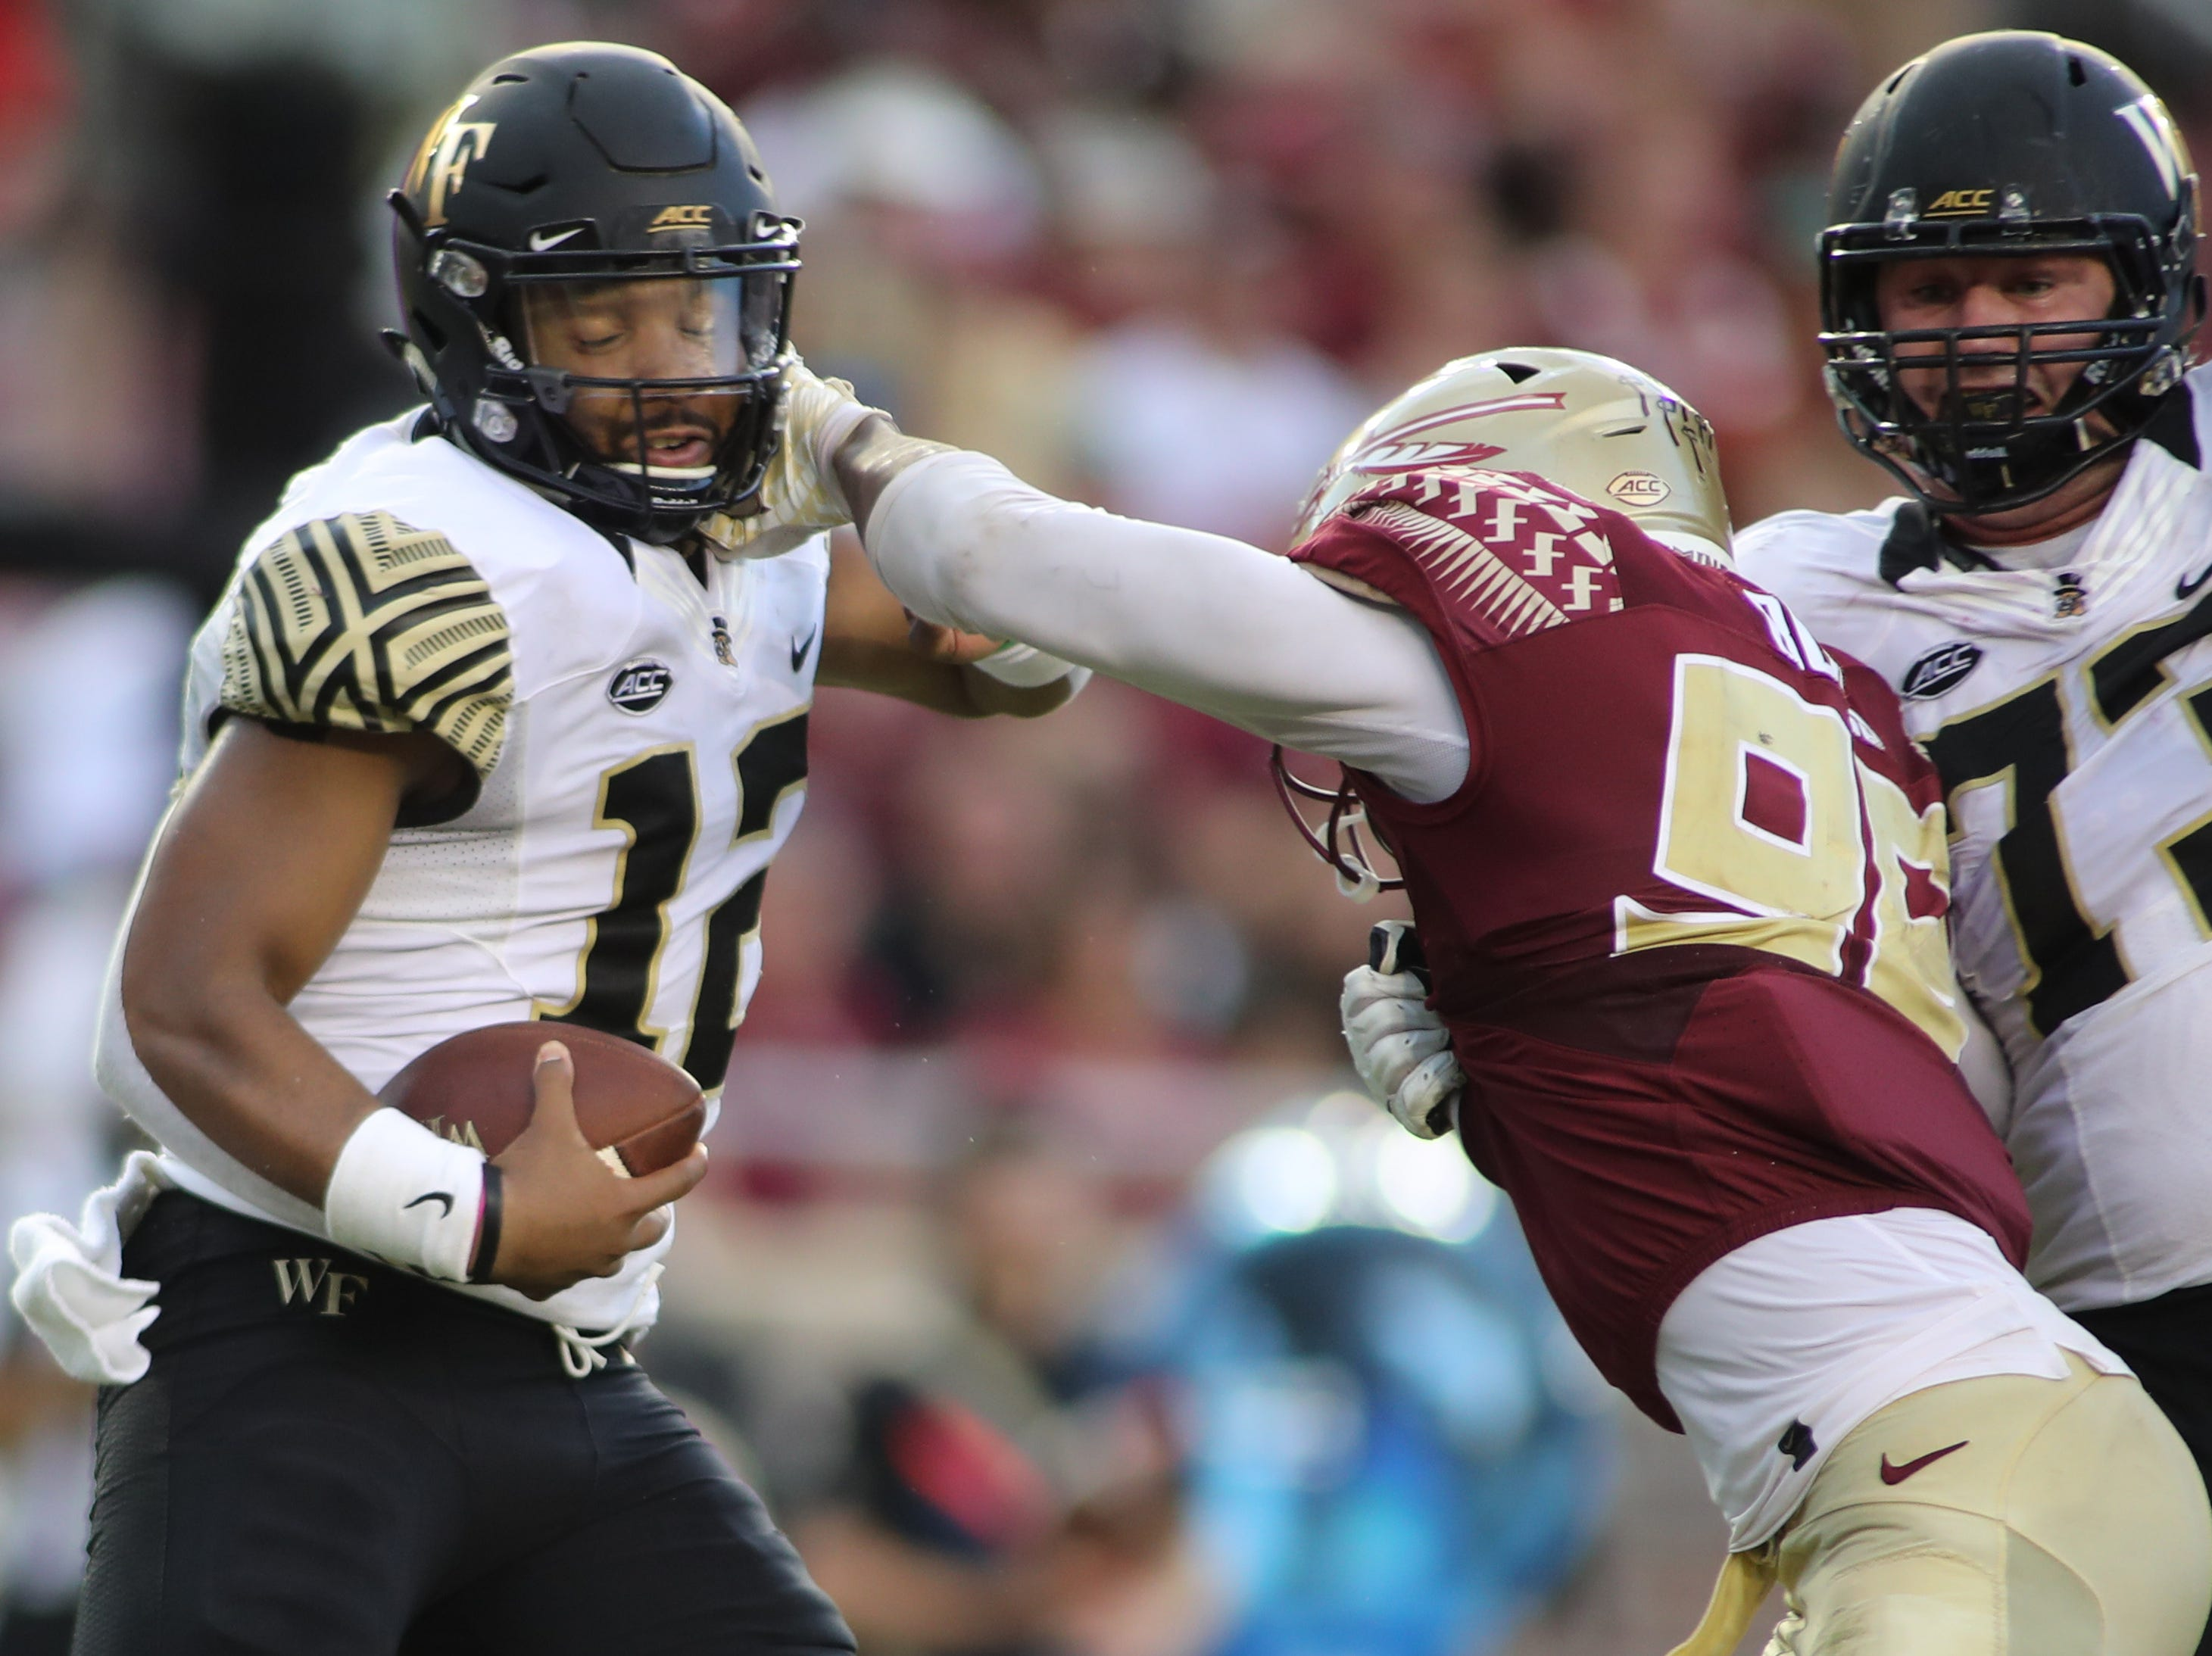 Florida State Seminoles defensive end Brian Burns (99) grabs the face mask of Wake Forest Demon Deacons quarterback Jamie Newman (12) during FSU's homecoming game against Wake Forest at Doak S. Campbell Stadium Saturday, Oct. 20, 2018.